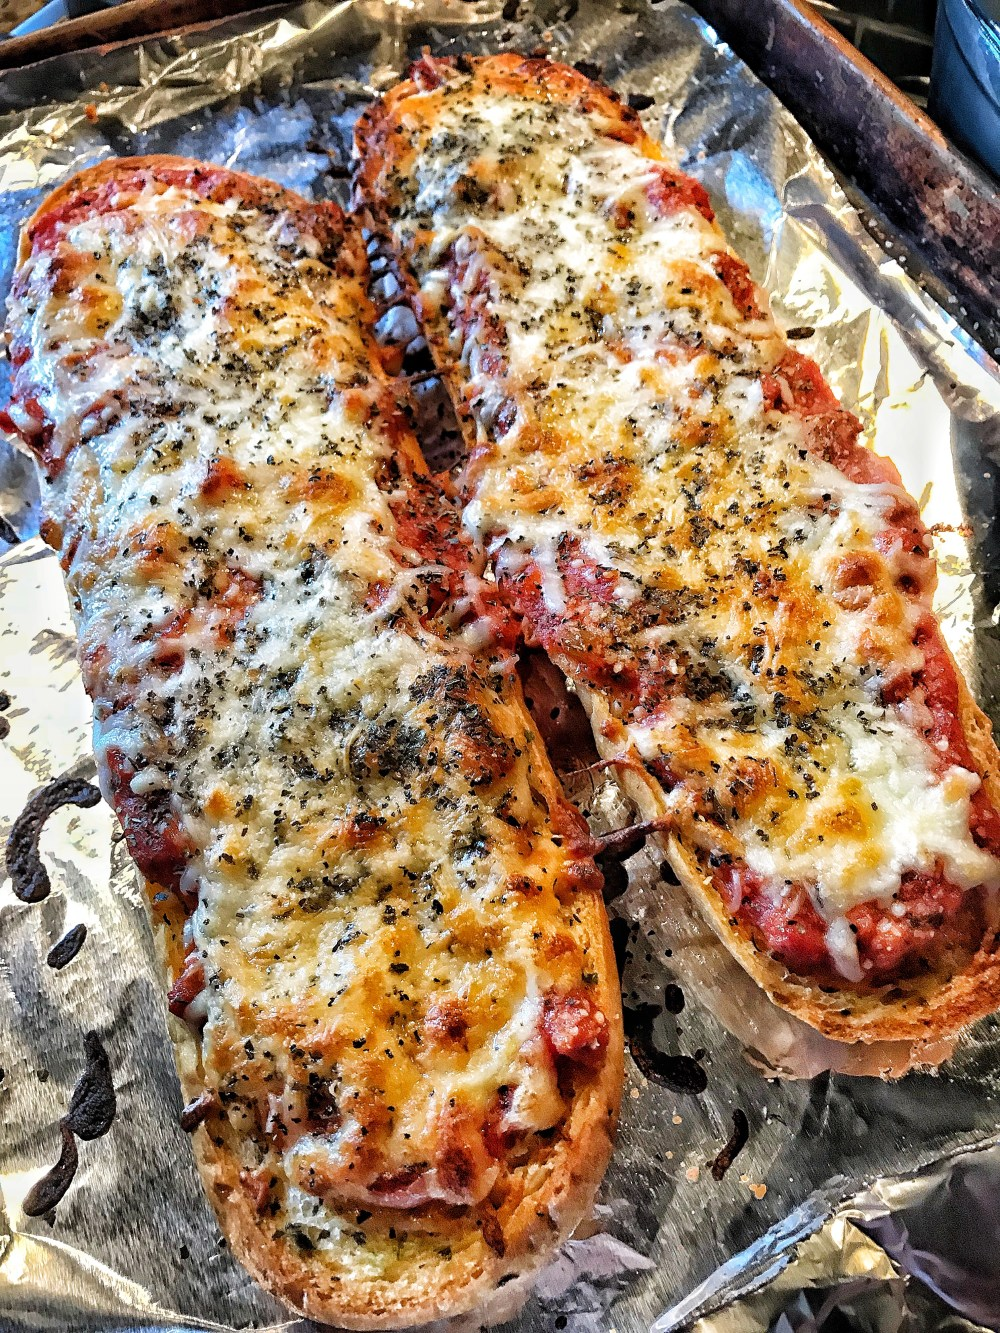 Bubbly Brown Pizza Bread